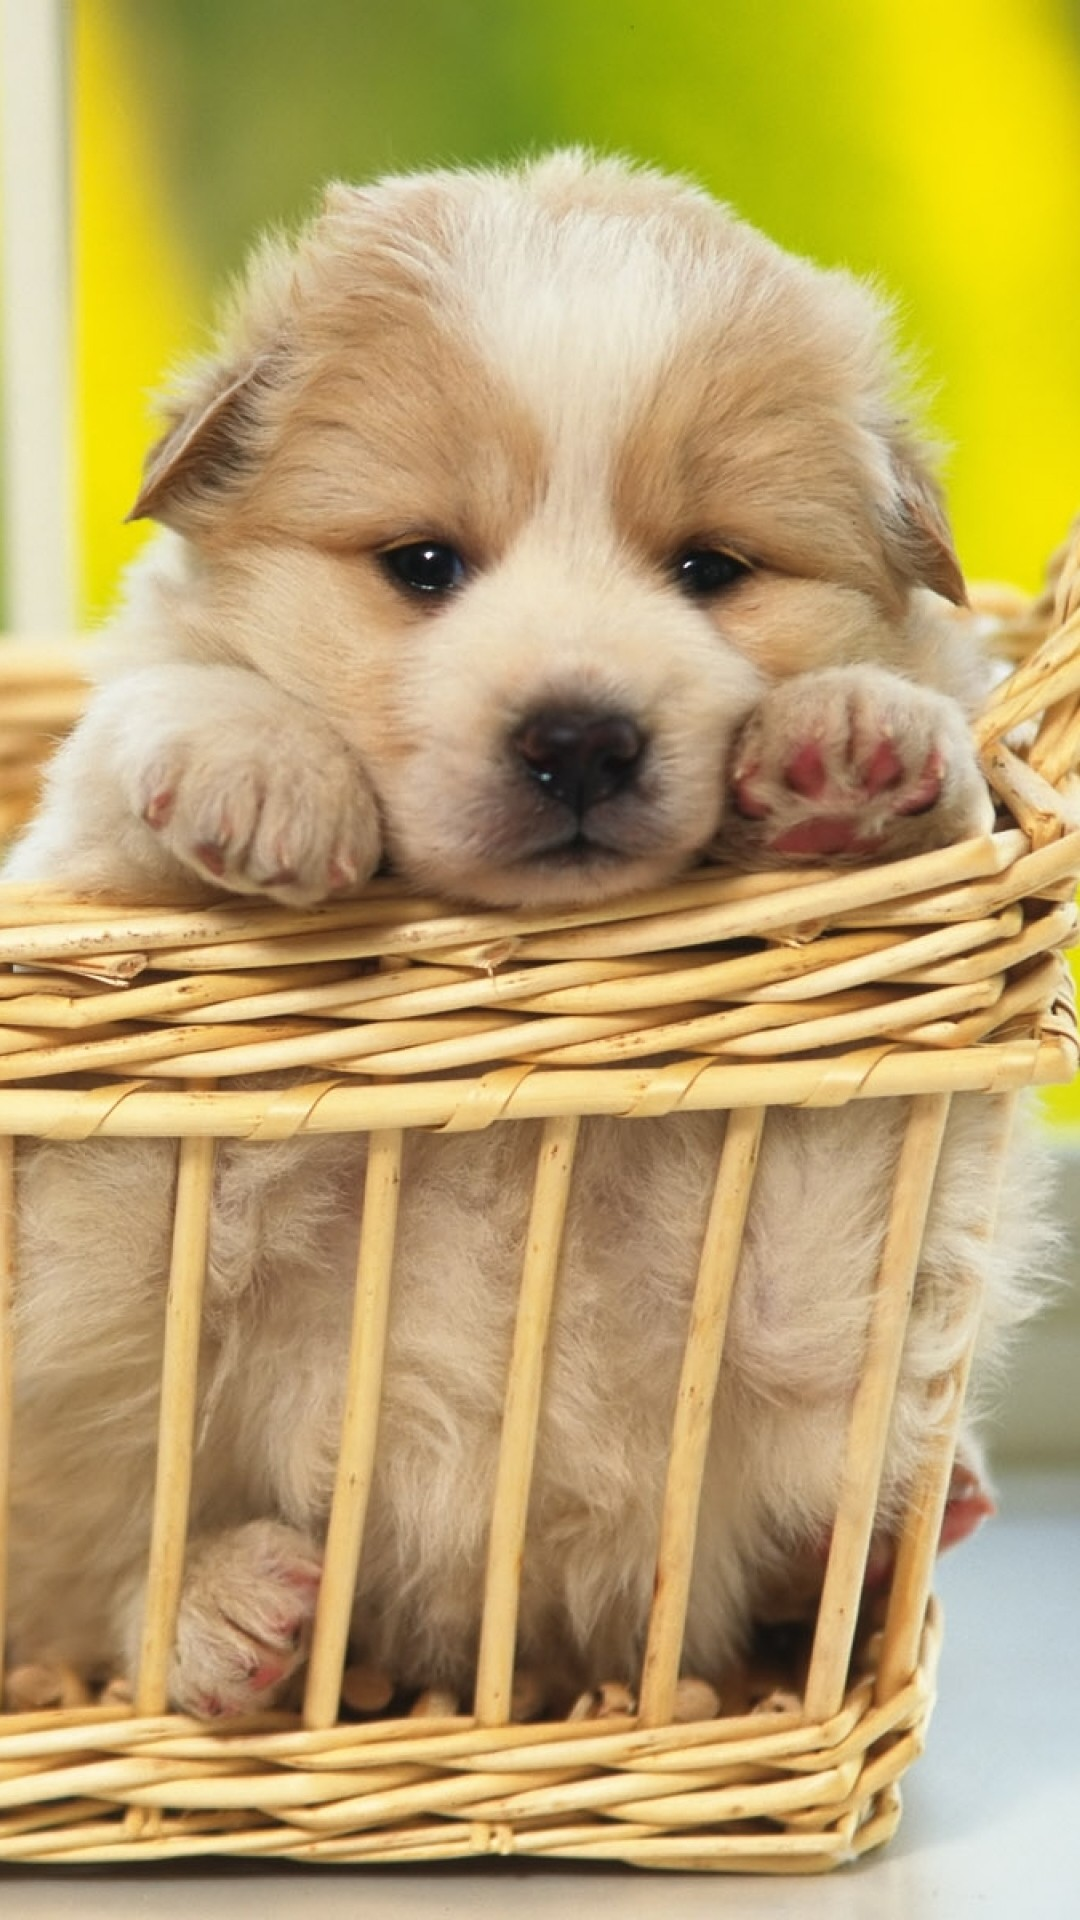 Puppy Wallpaper Kolpaper Awesome Free Hd Wallpapers